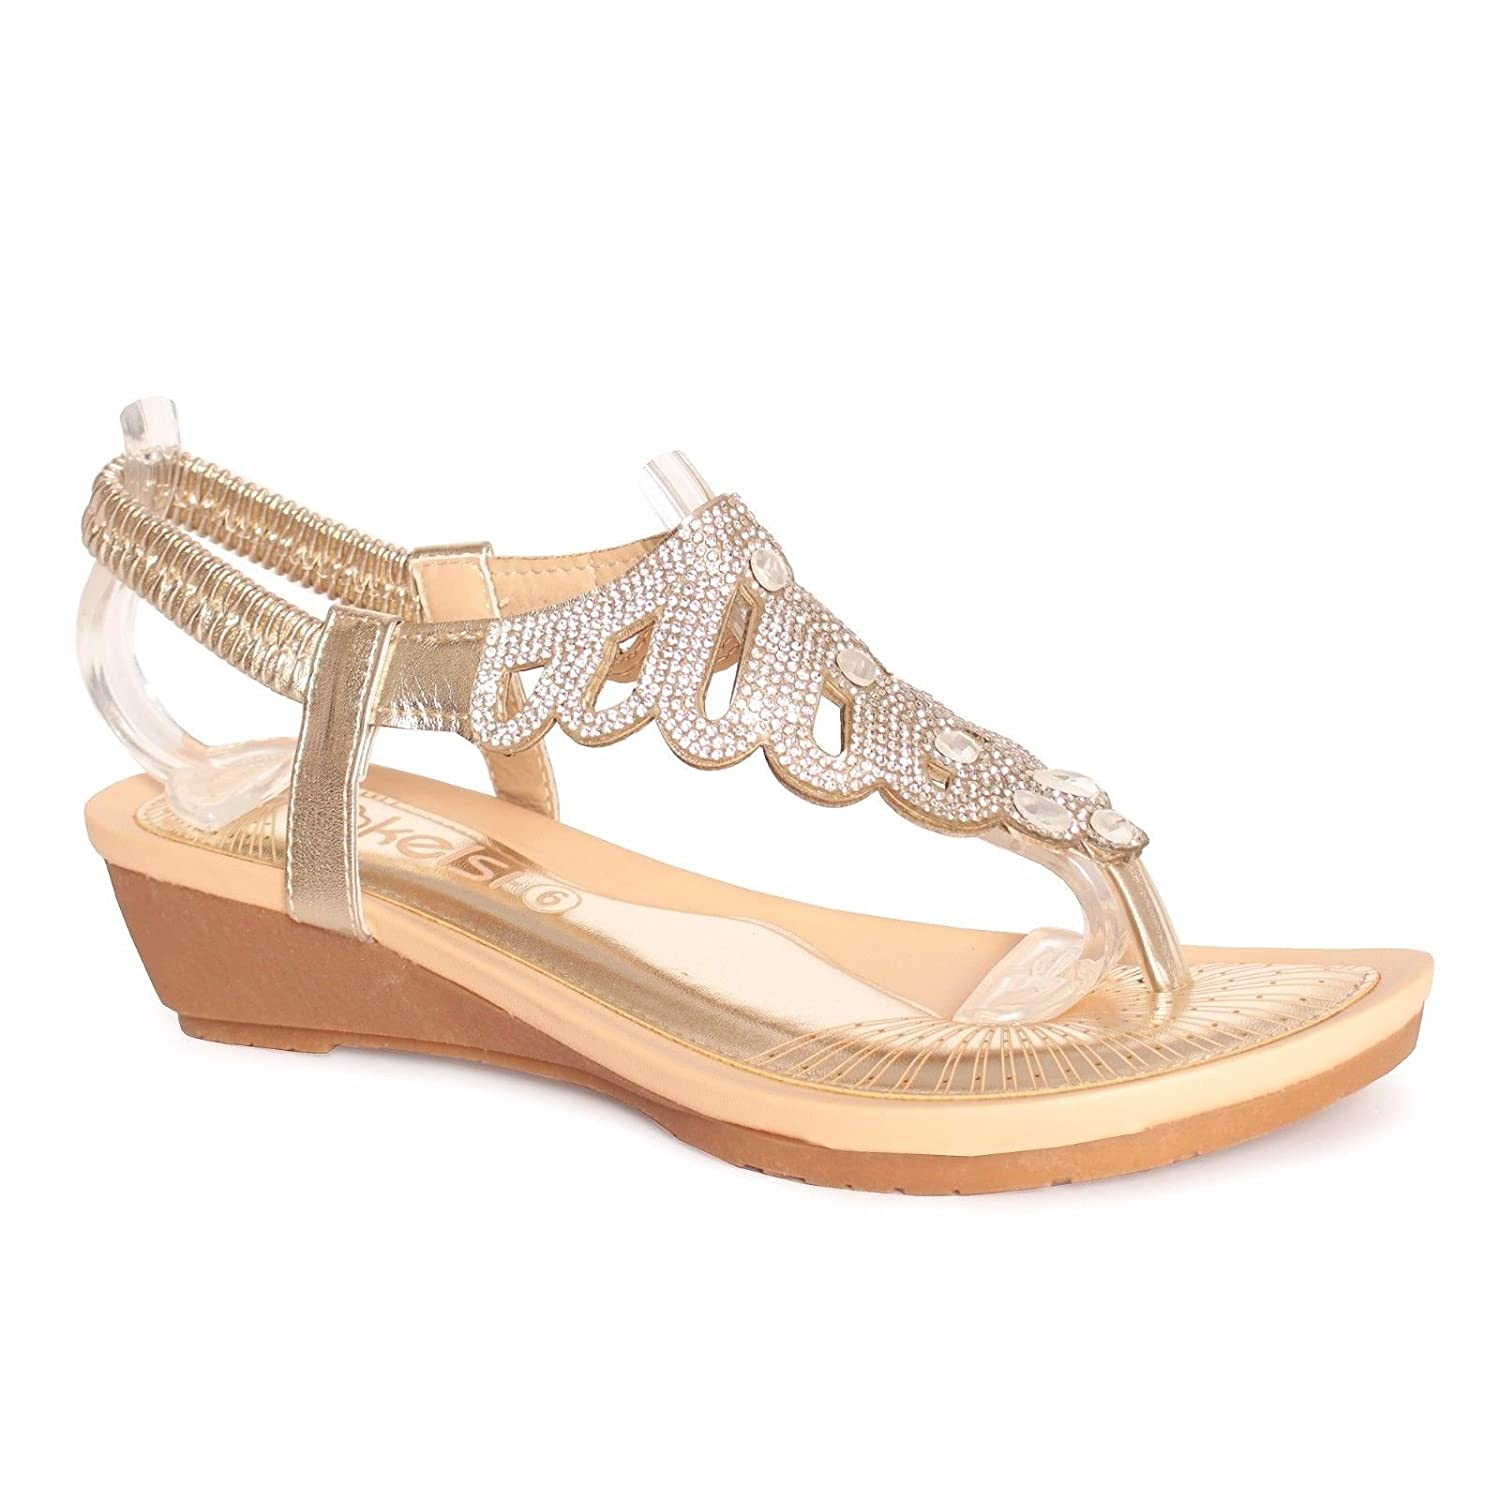 Ladies Womens Sandals Gold Jewelled Sling Back Low Wedge Shoes Size